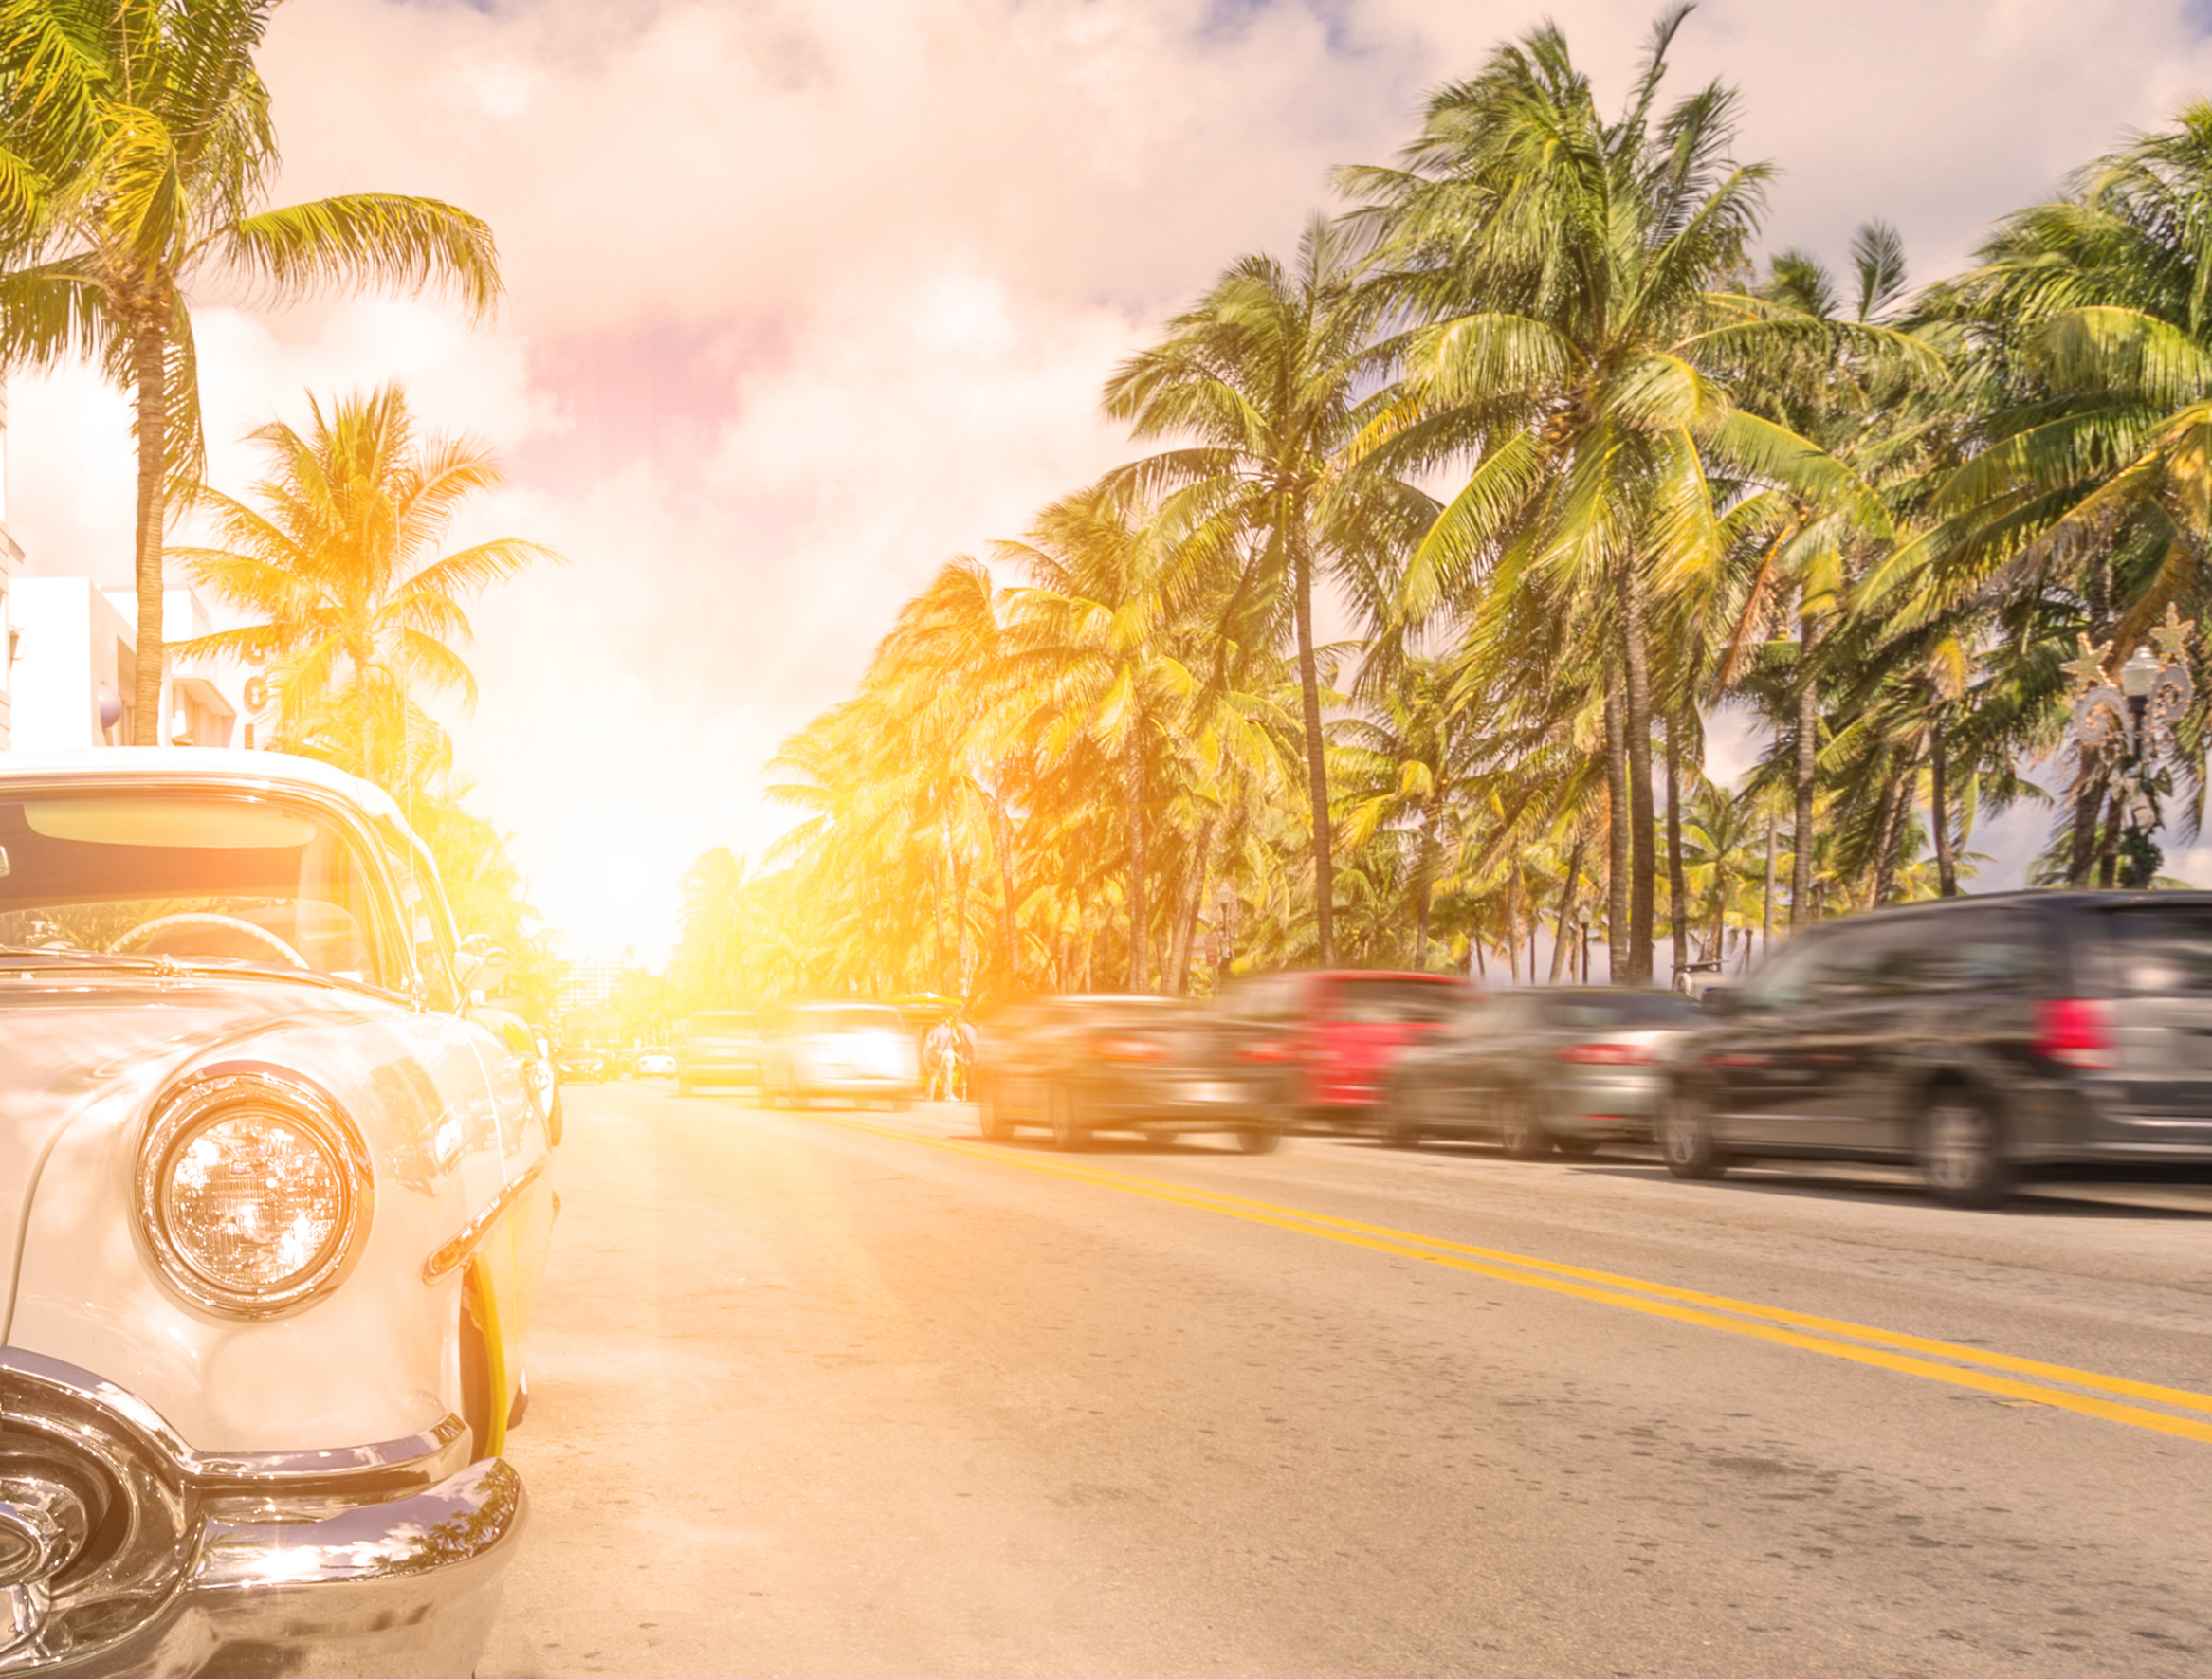 How Do I Get a Traffic Accident Report From the Florida